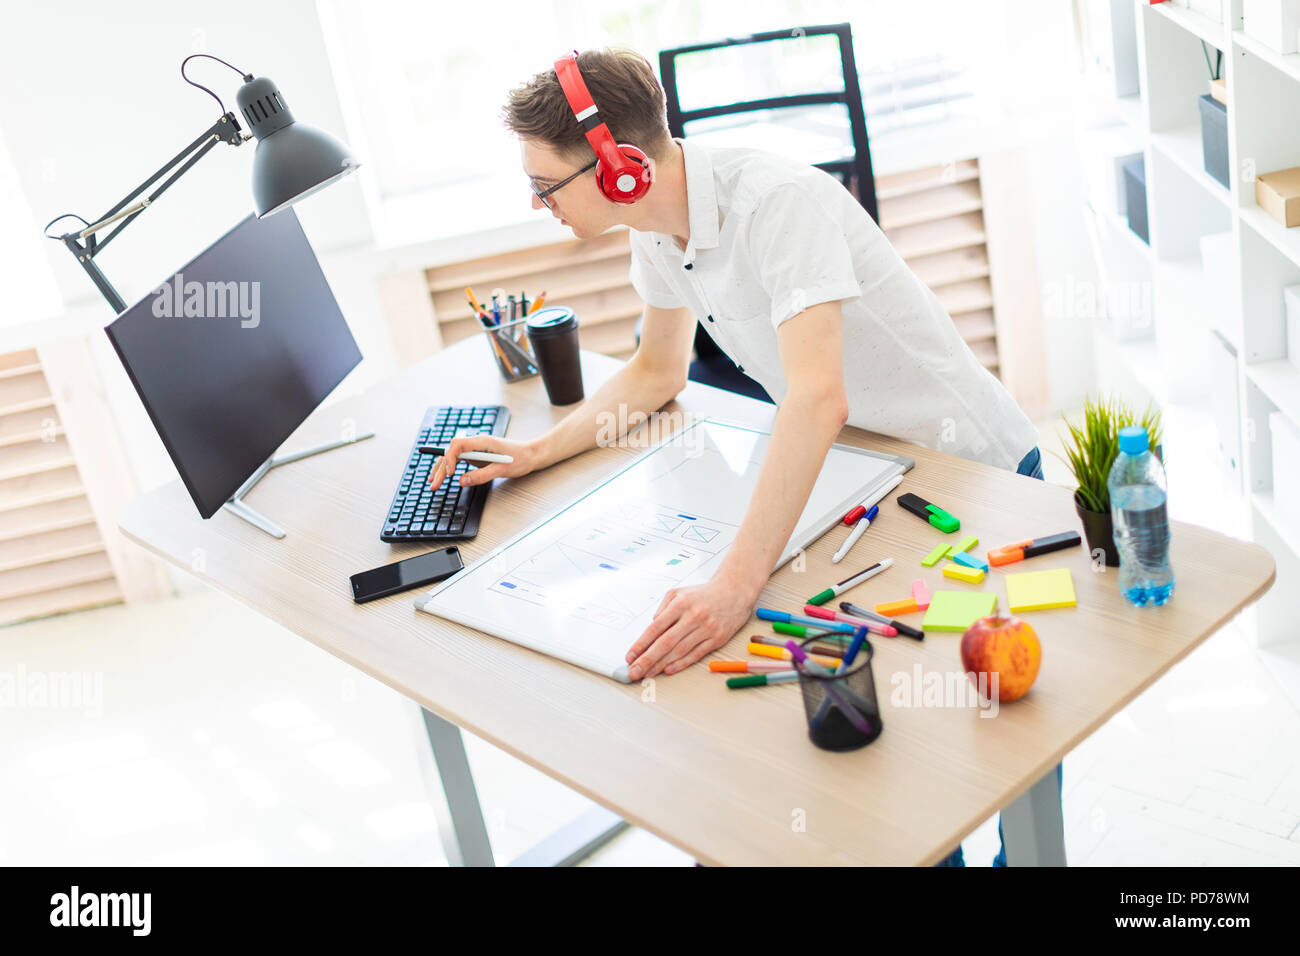 A young man with glasses and headphones stands near a computer desk, holds a marker in his hand and prints on the keyboard. Before him lies a magnetic board and markers. - Stock Image